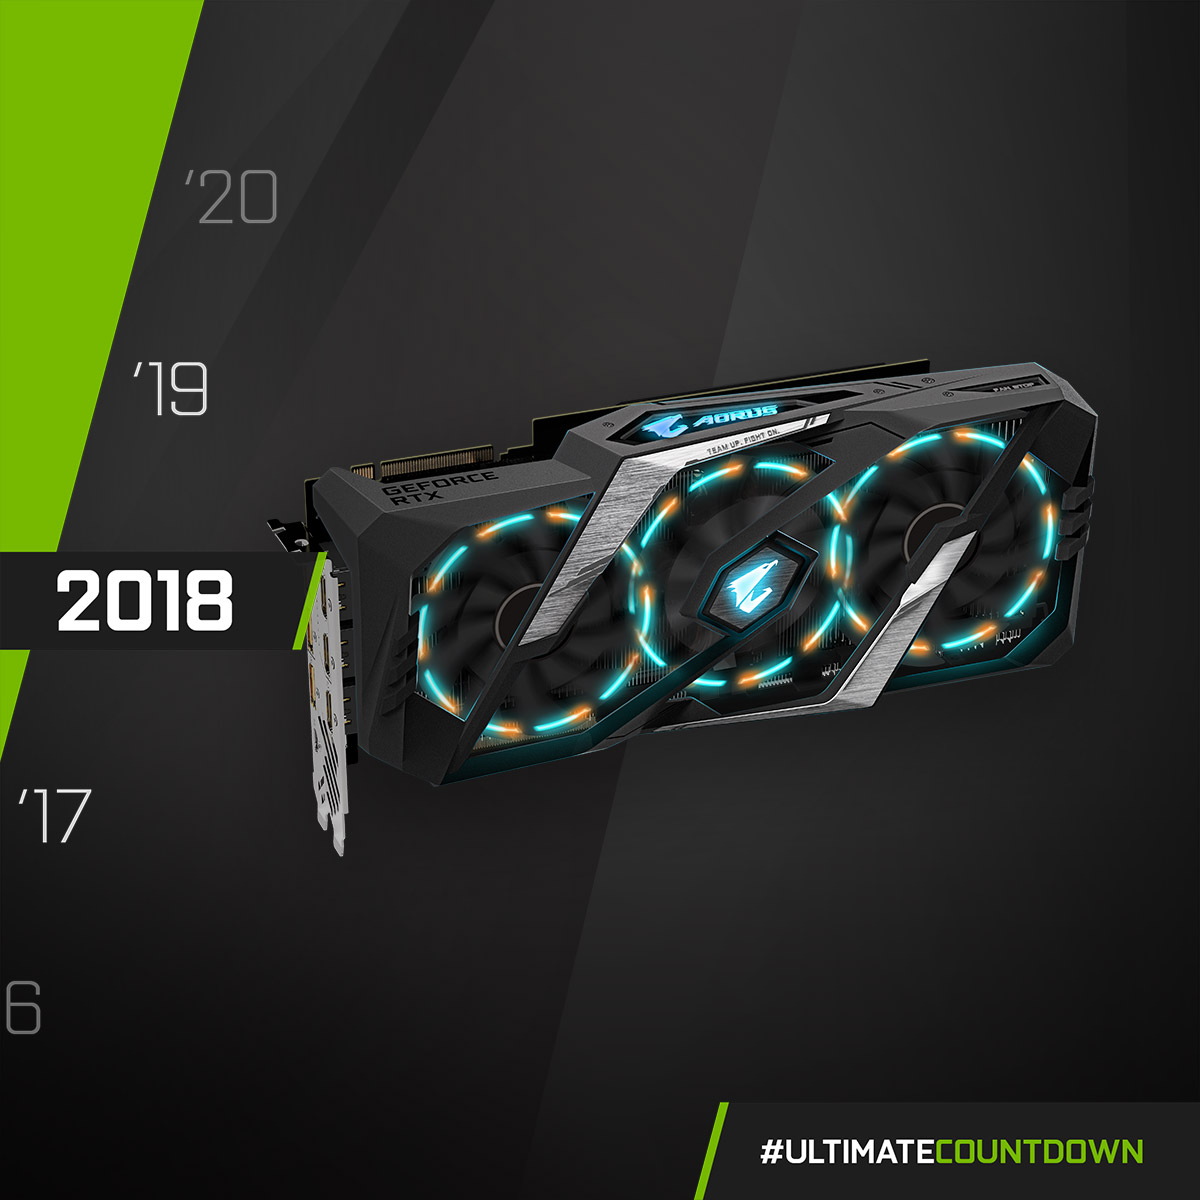 NVIDIA GeForce RTX 2080 Ti - 2018  Can't take my eyes off you! The beauty of the RGB rings on AORUS GeForce RTX 20 series graphics cards 😍 ❤️💚💙  #UltimateCountdown #UltimateAORUS #GIGABYTE https://t.co/DafGqiyxDG